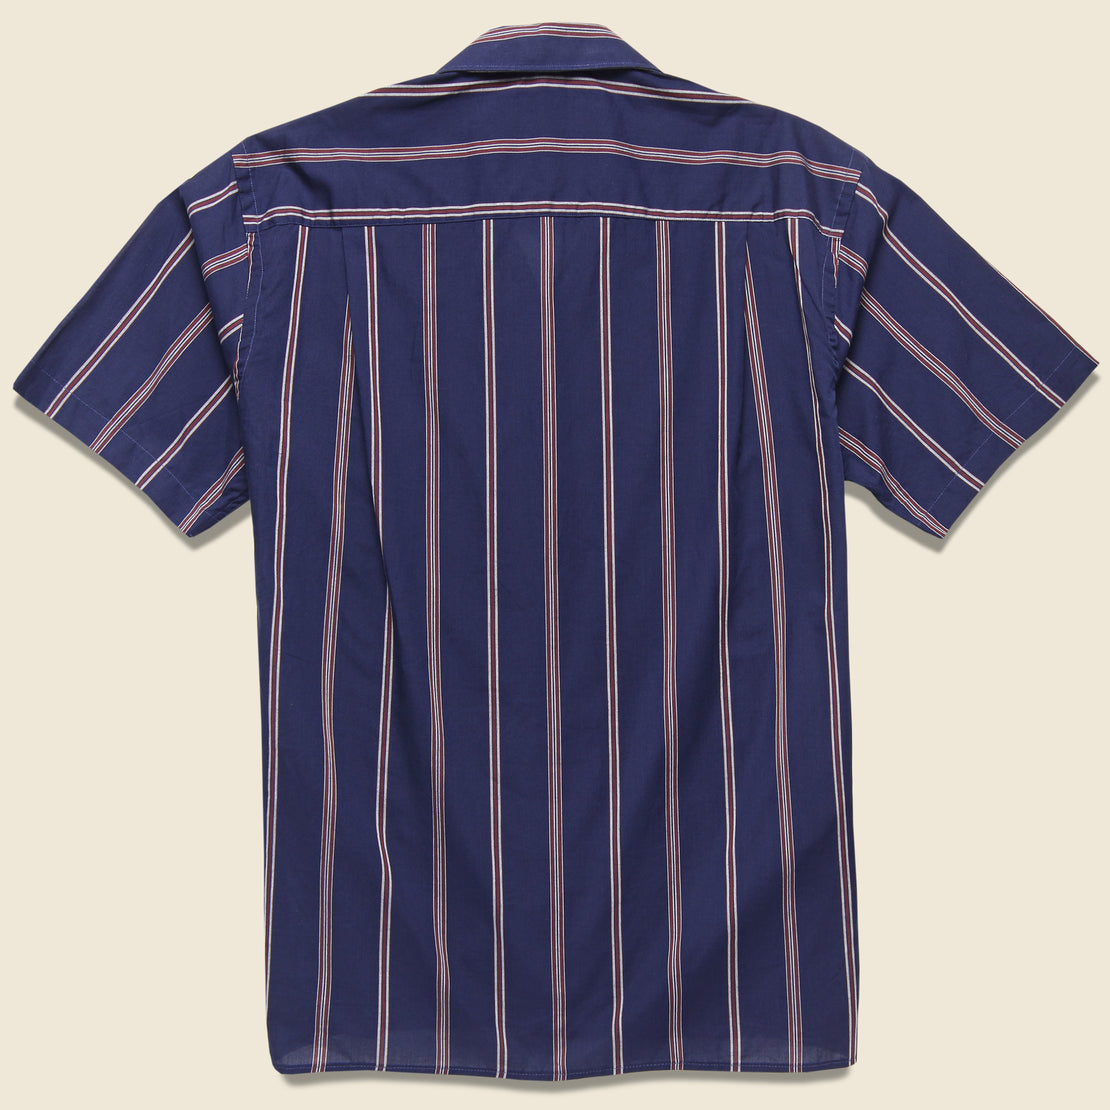 Stripe Shirt - Navy